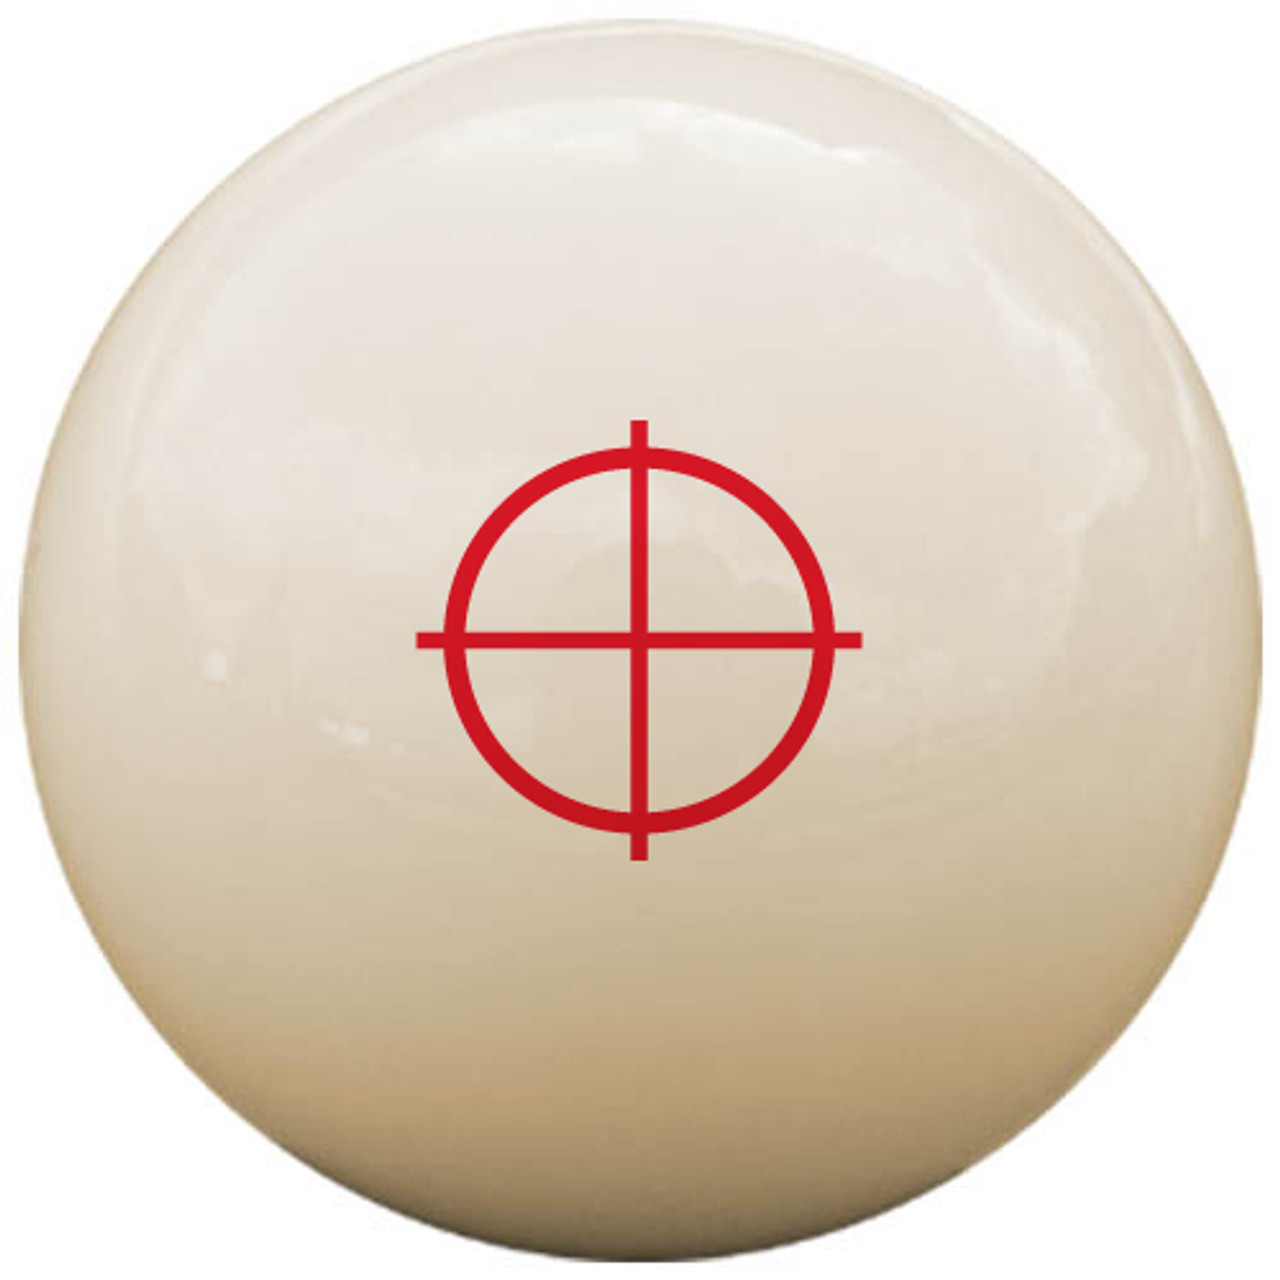 Custom Pool Cue Ball - Crosshairs